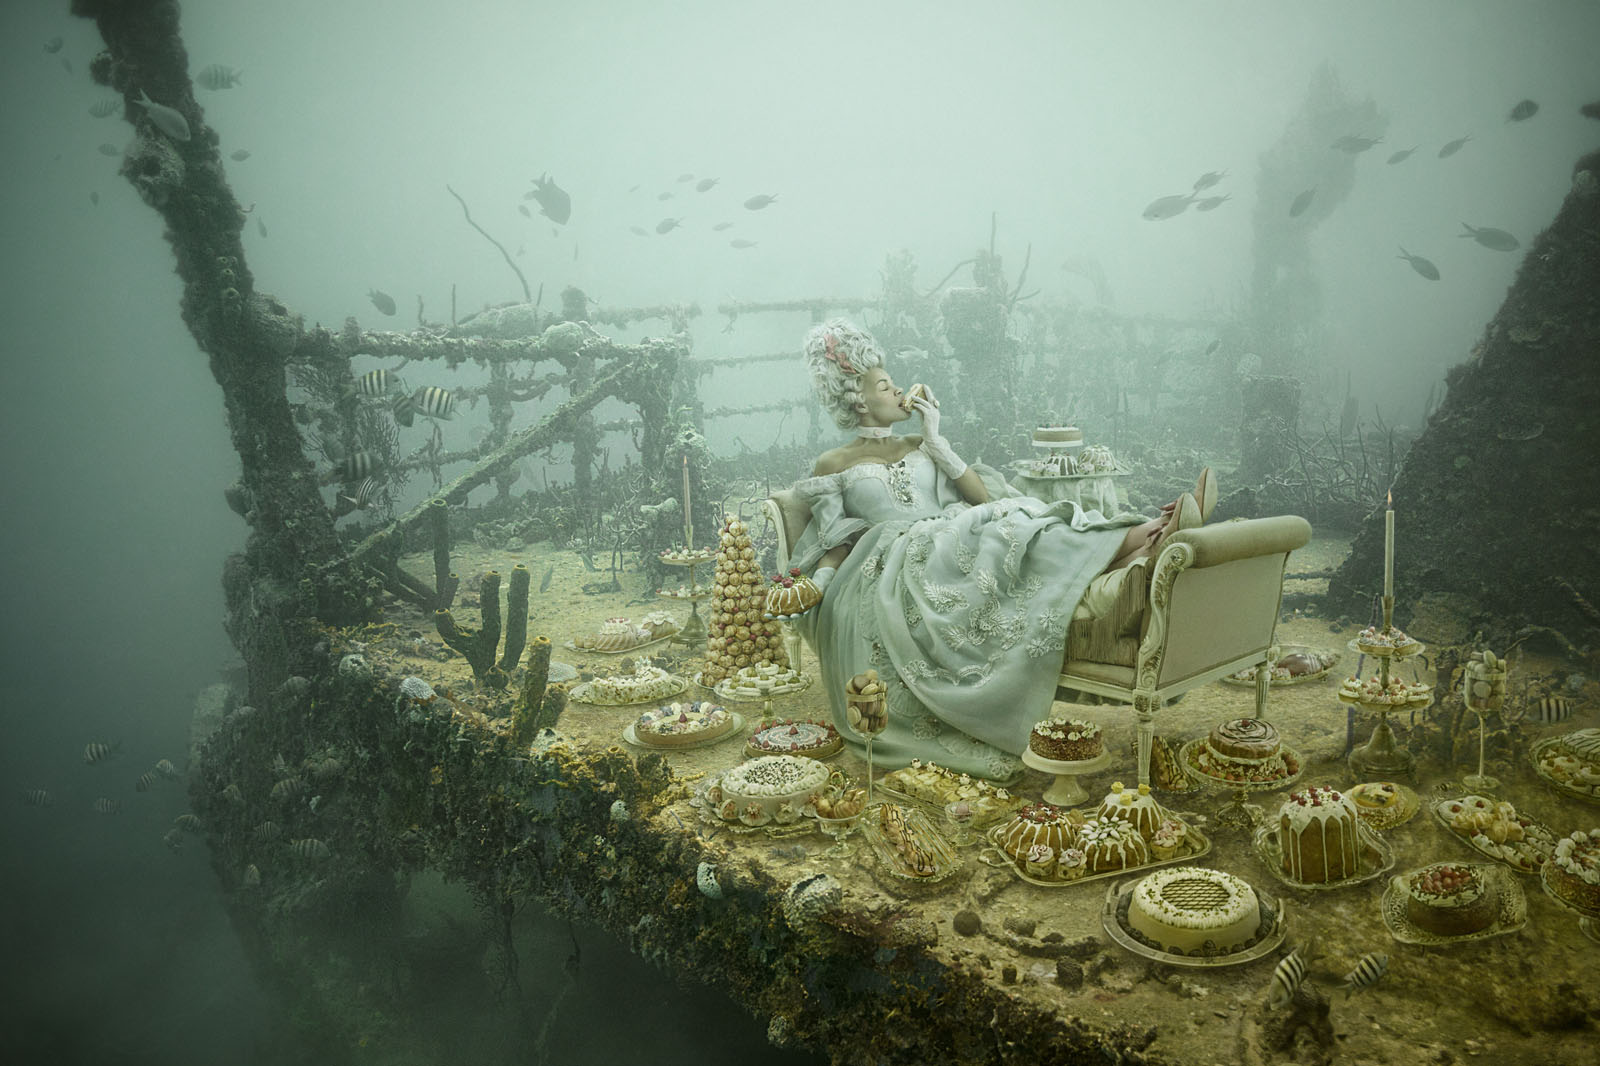 stavronikita-project-by-andreas-franke_Sweet-Babette-1600